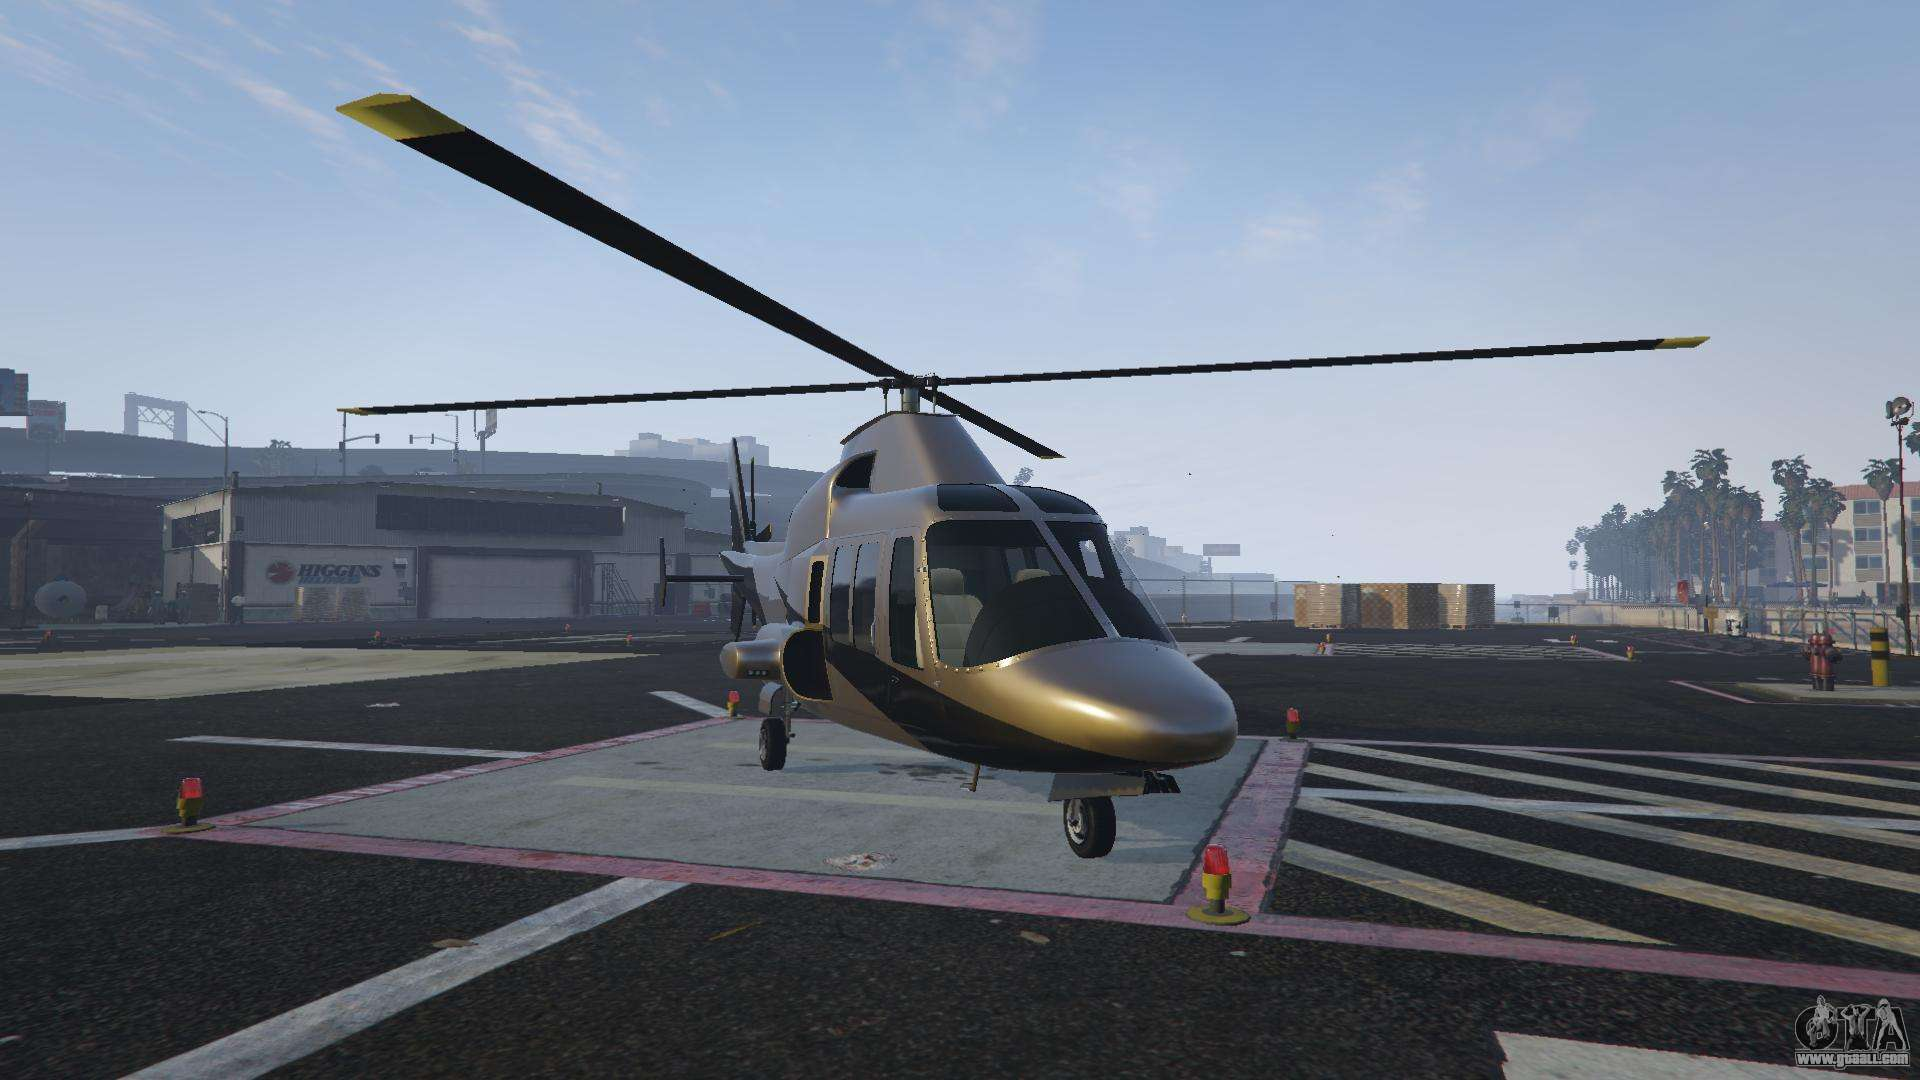 gta cheats vice city helicopter with 27768 Buckingham Swift Deluxe on 73414 Hughes Oh 6 Cayuse additionally 71689 Bell Uh 1d Huey Bundeswehr besides Watch as well 31133 Team Xpg Gta V Trainer 9 likewise Download Gta Vice City Cheat Codes List.